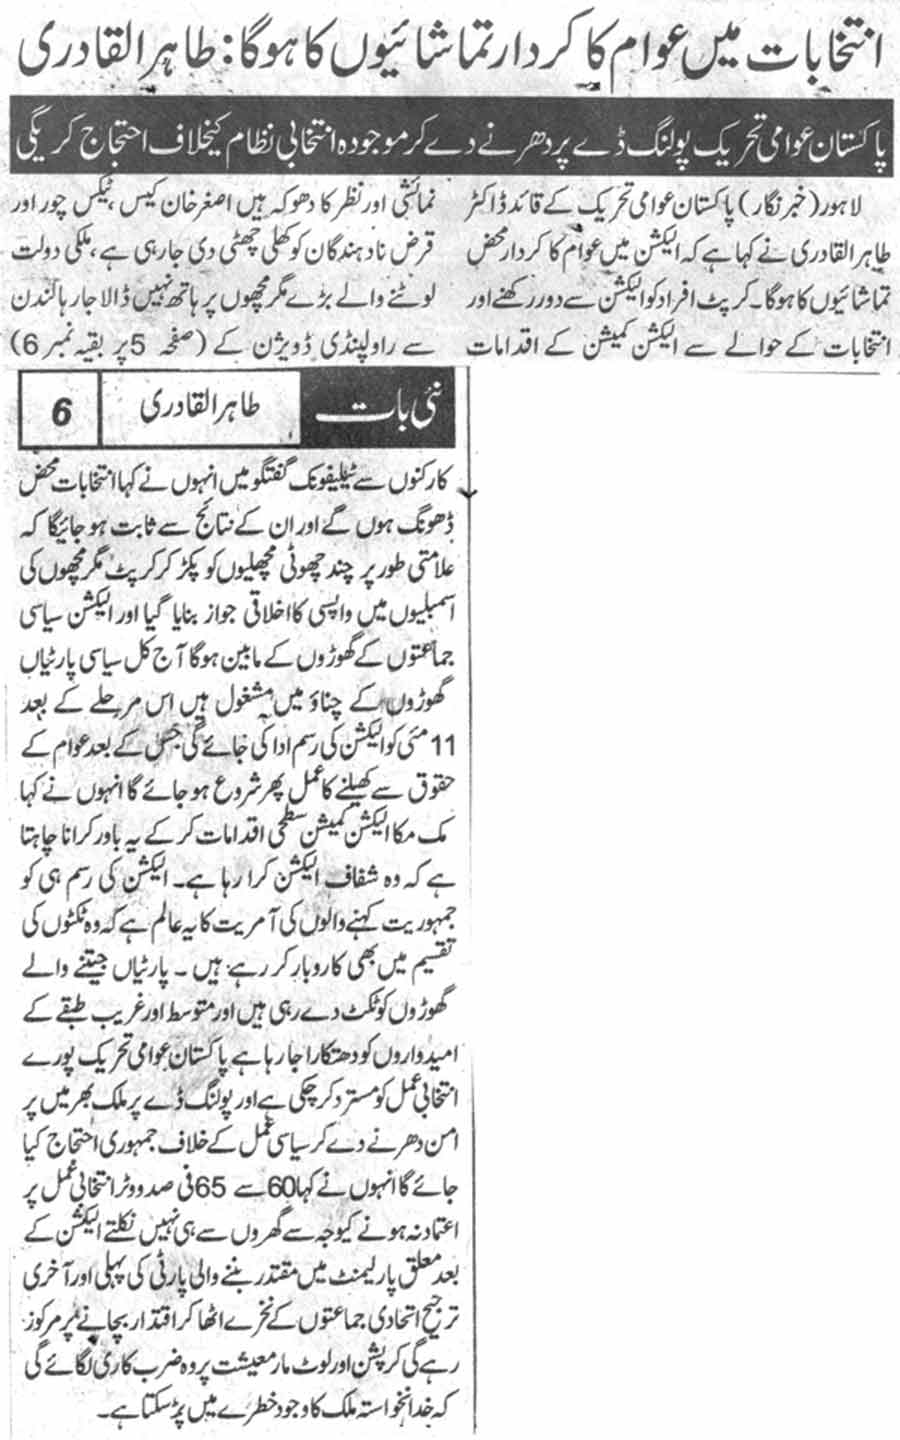 Print Media Coverage ofLahore on date: Saturday, 6 April